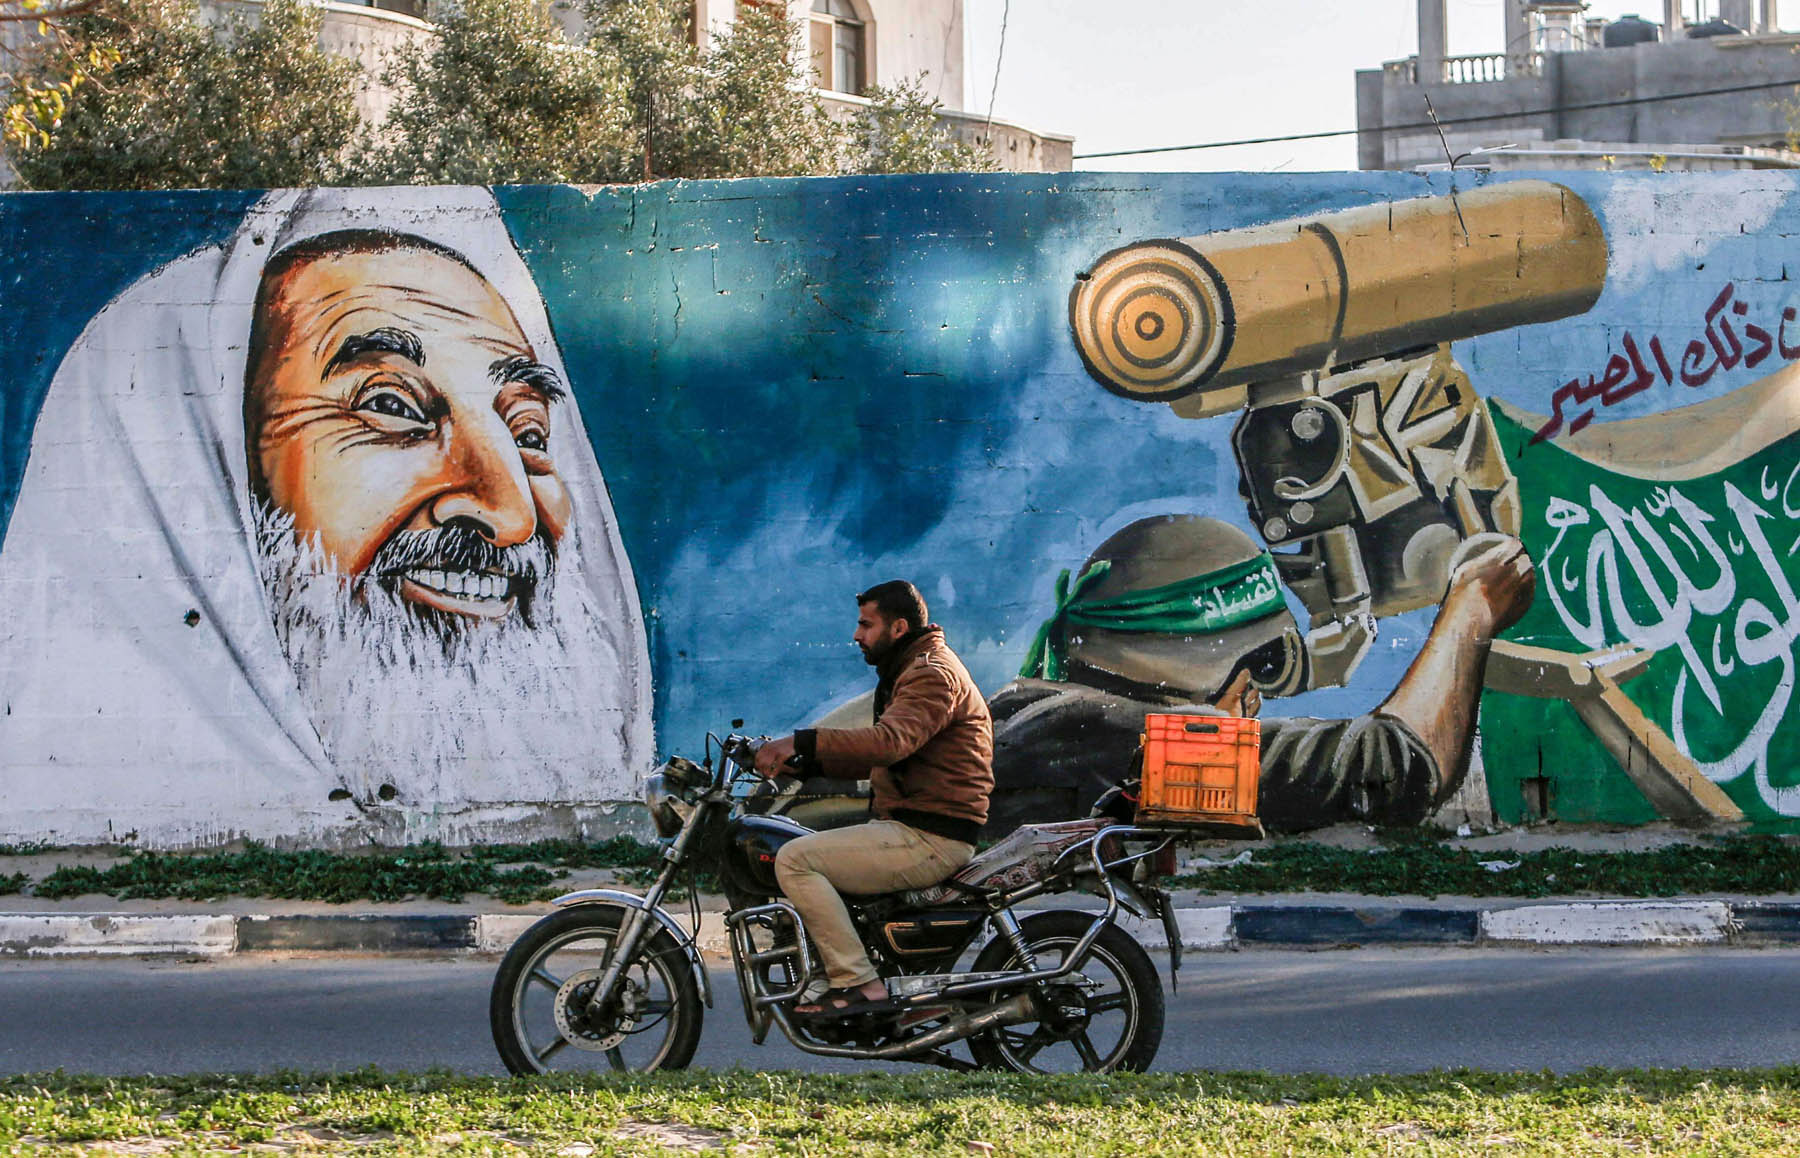 A Palestinian man drives a motorcycle past a mural depicting late Hamas spiritual leader Sheikh Ahmed Yassin and a masked fighter from the Qassam Brigades in Rafah in the southern Gaza Strip, March 14. (AFP)